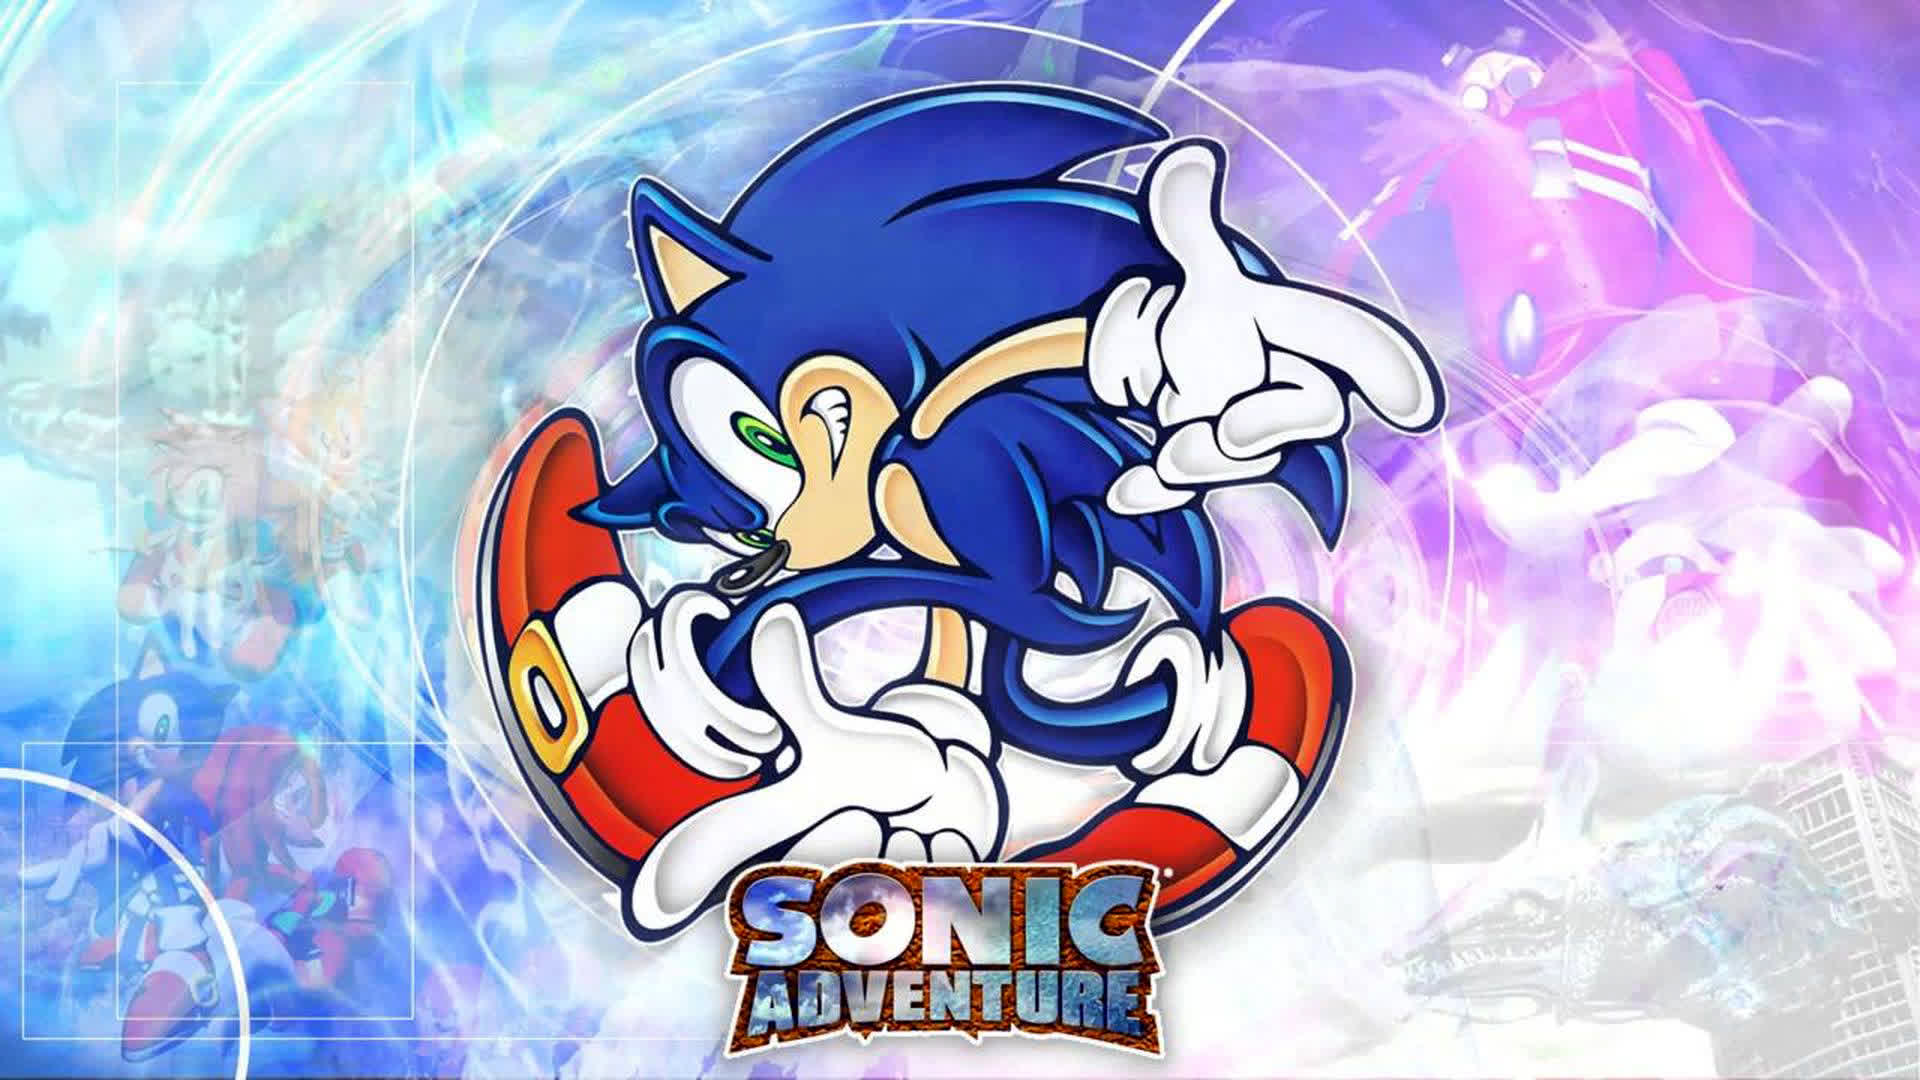 Fan-made Sonic game for PS5 was created inside another game